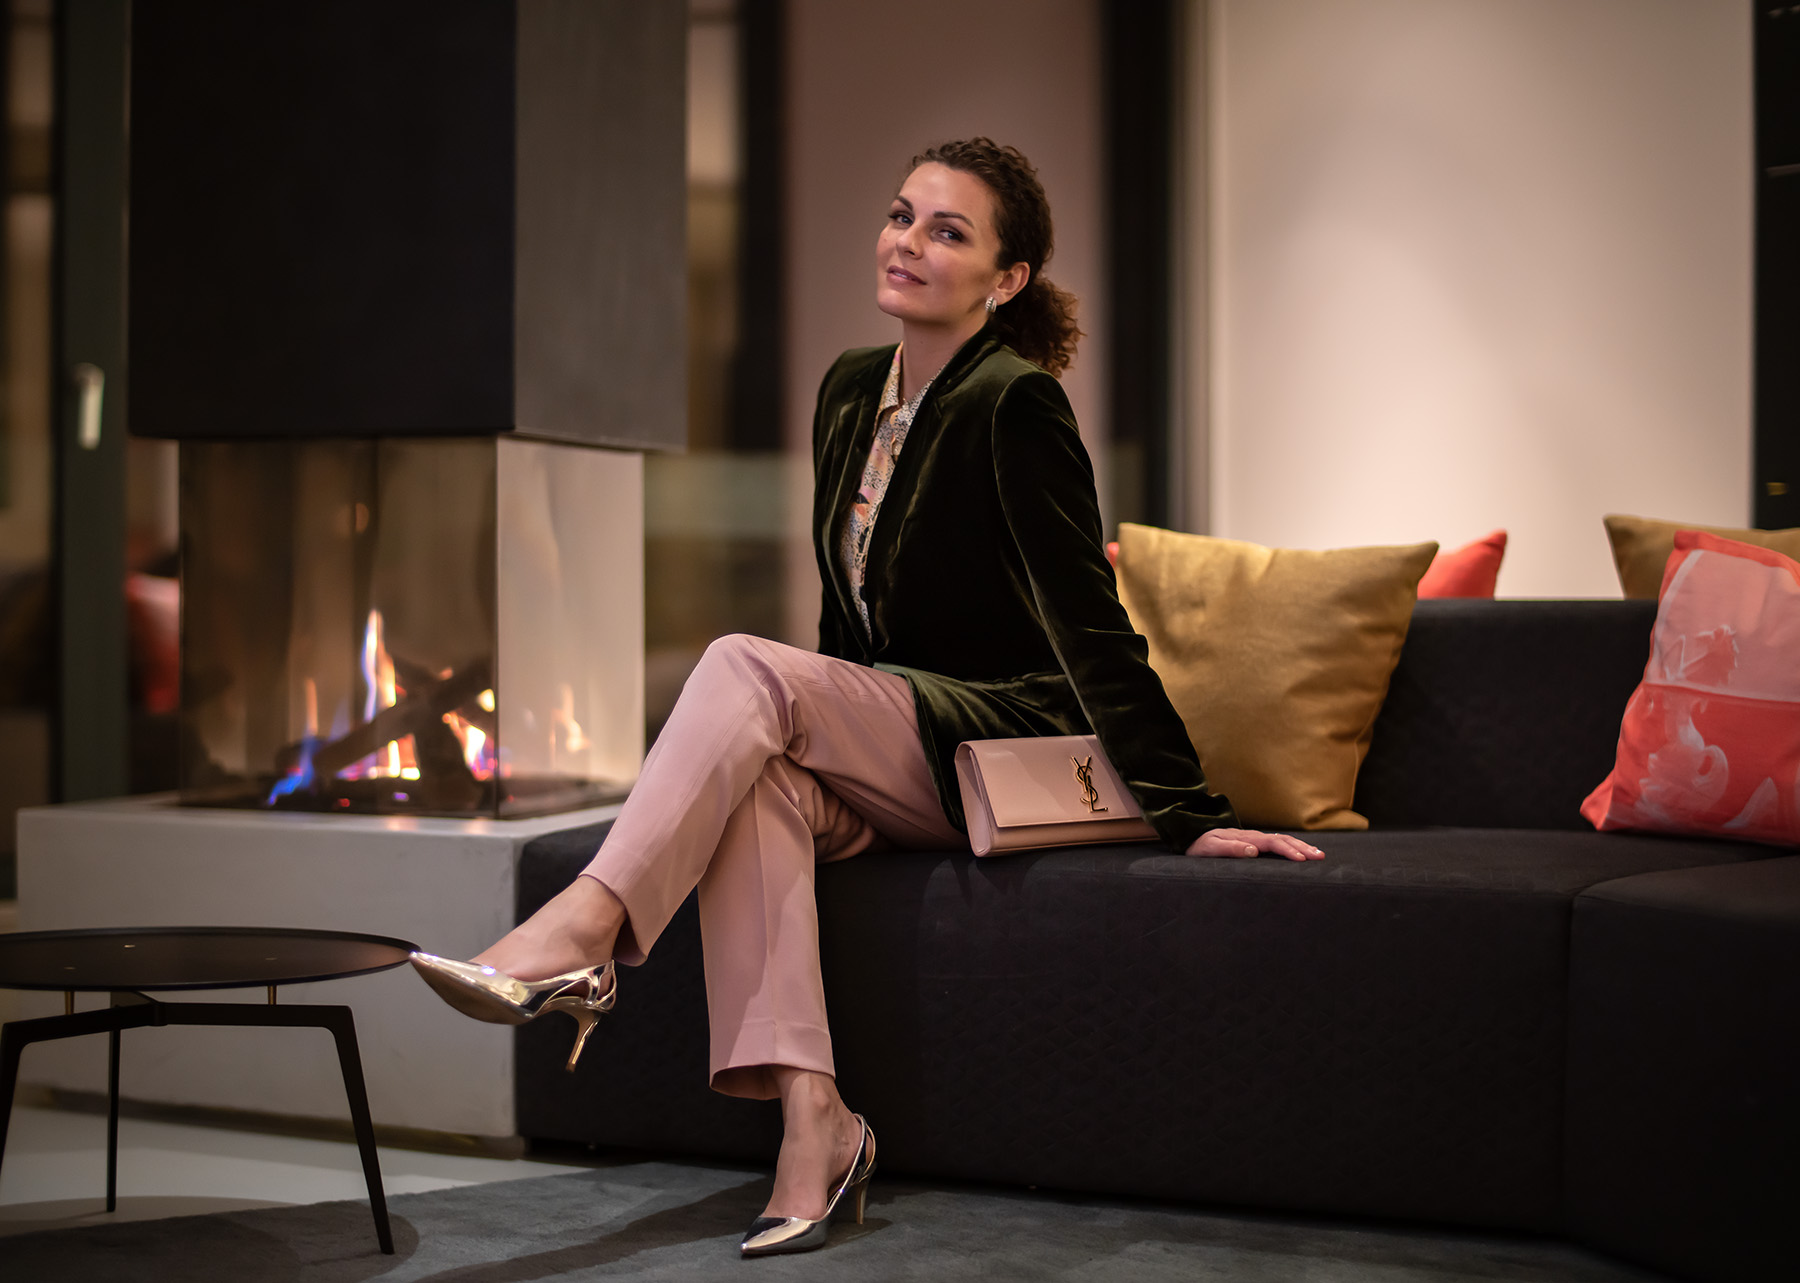 woman on a sofa by a fireplace